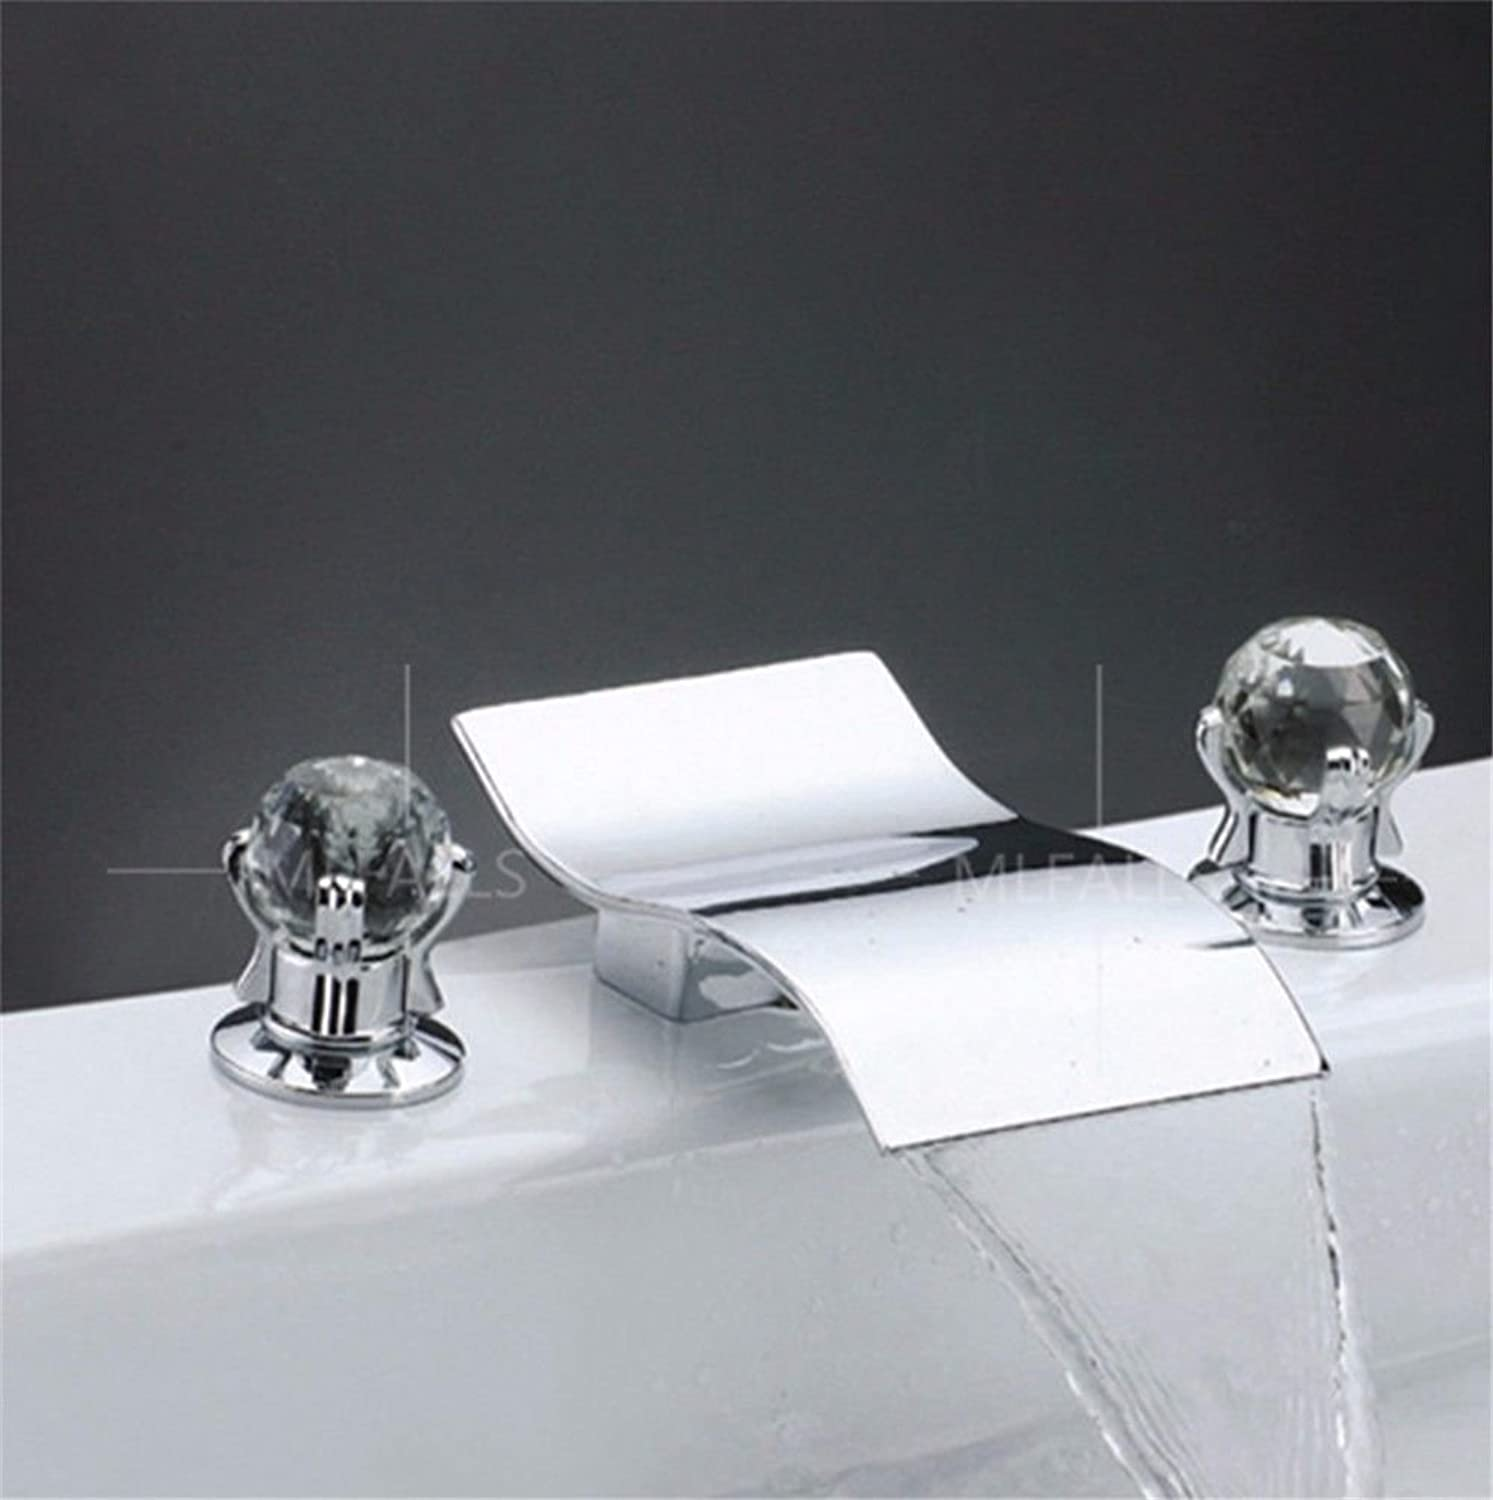 Lalaky Taps Faucet Kitchen Mixer Sink Waterfall Bathroom Mixer Basin Mixer Tap for Kitchen Bathroom and Washroom Copper Grand Falls Hot and Cold Crystal Hands